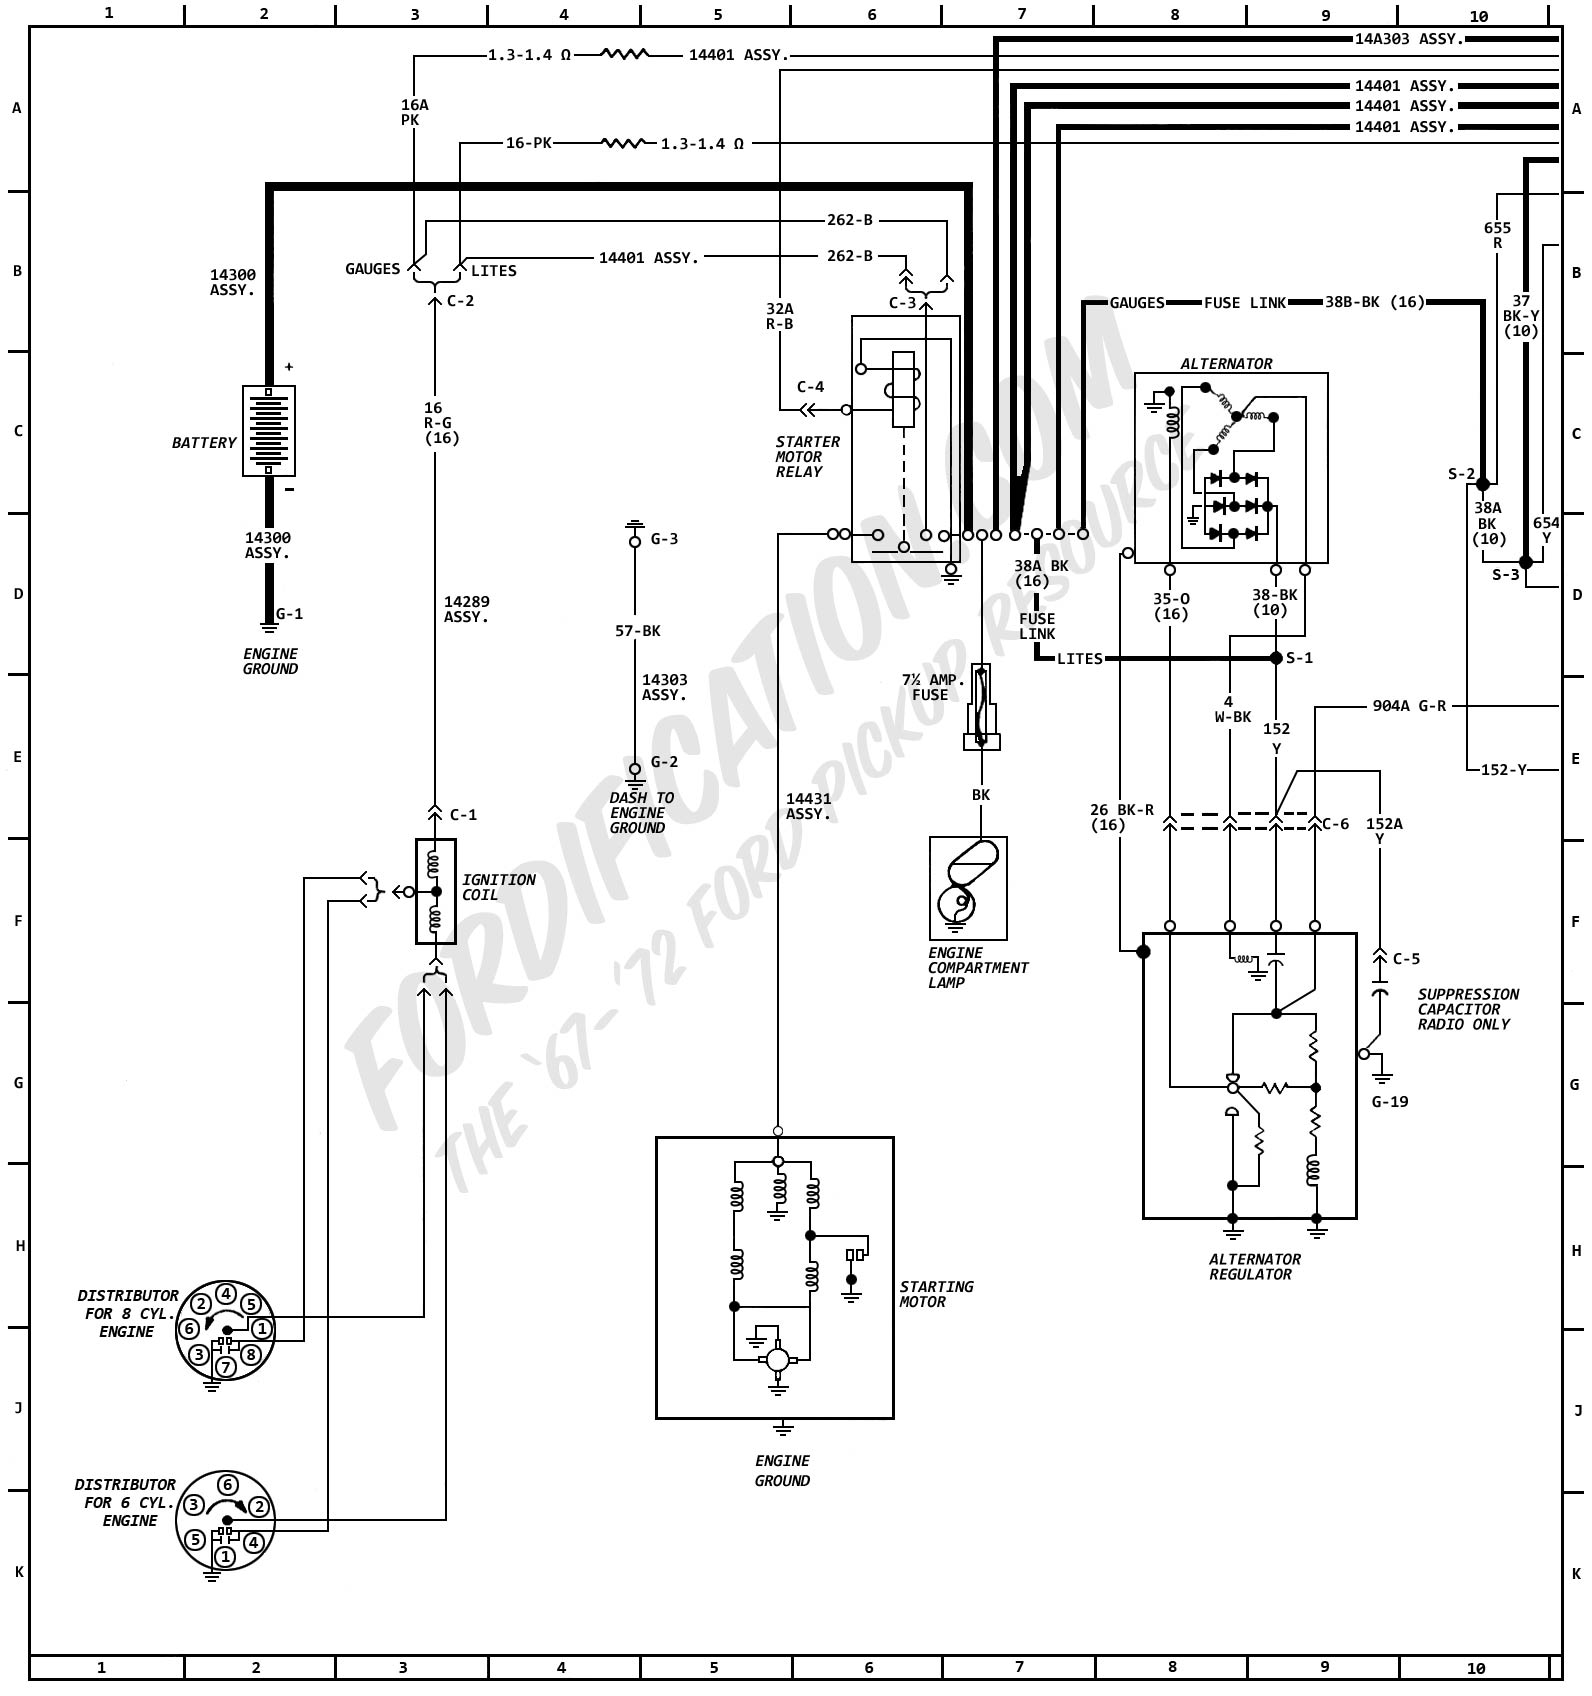 1972MasterWiring_01 wiring diagram for 1972 ford f100 readingrat net  at n-0.co